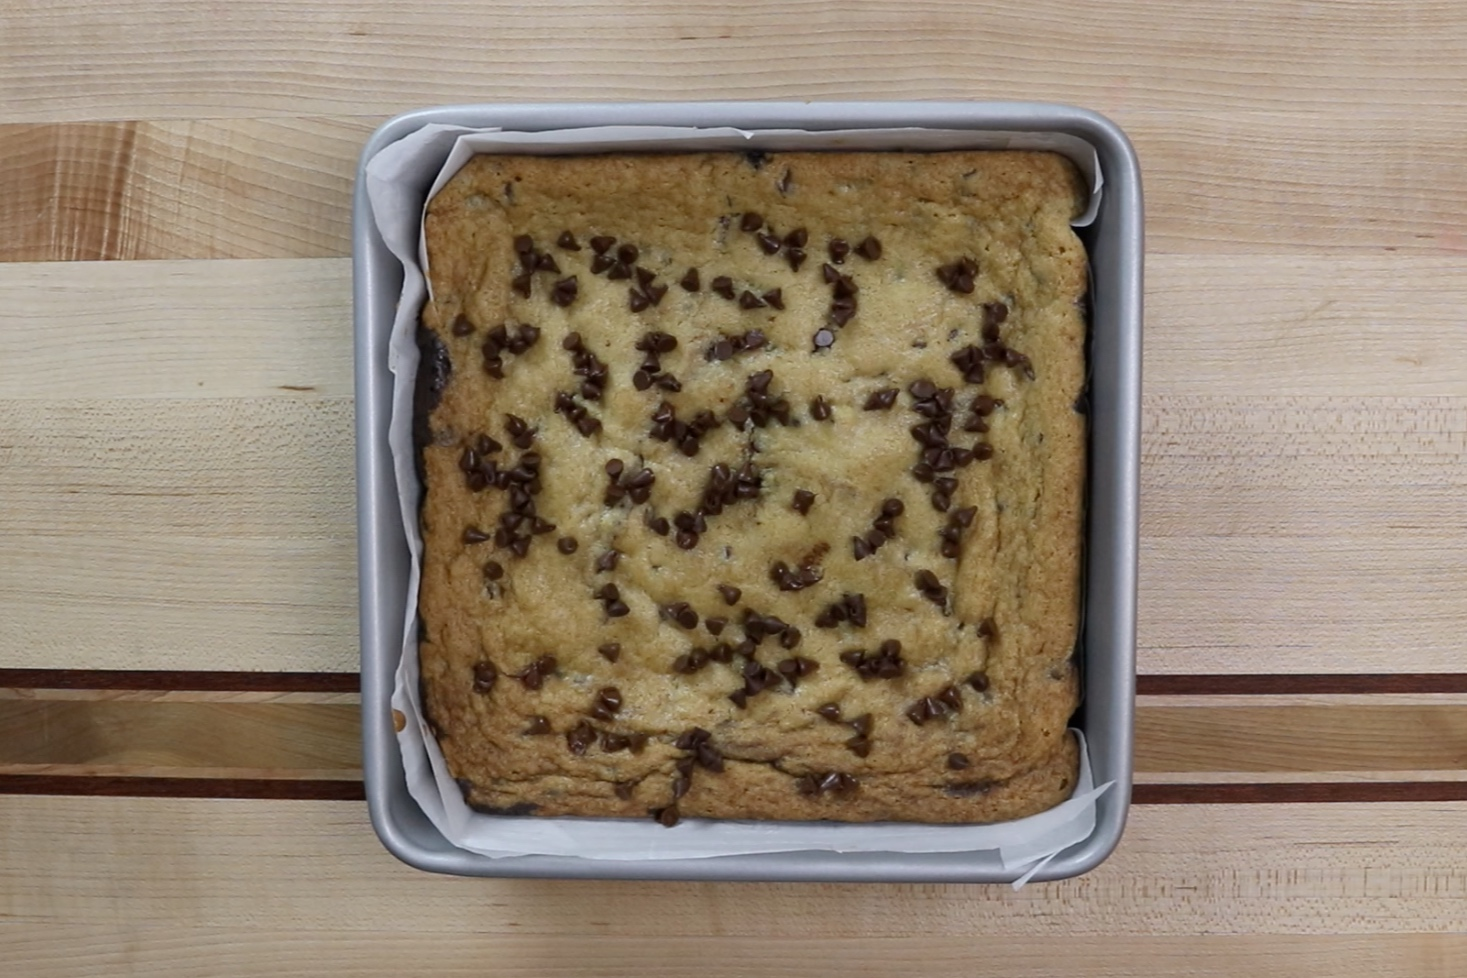 16. Allow the bars to cool completely before cutting. Let cool in refrigerator or freezer for best results. -